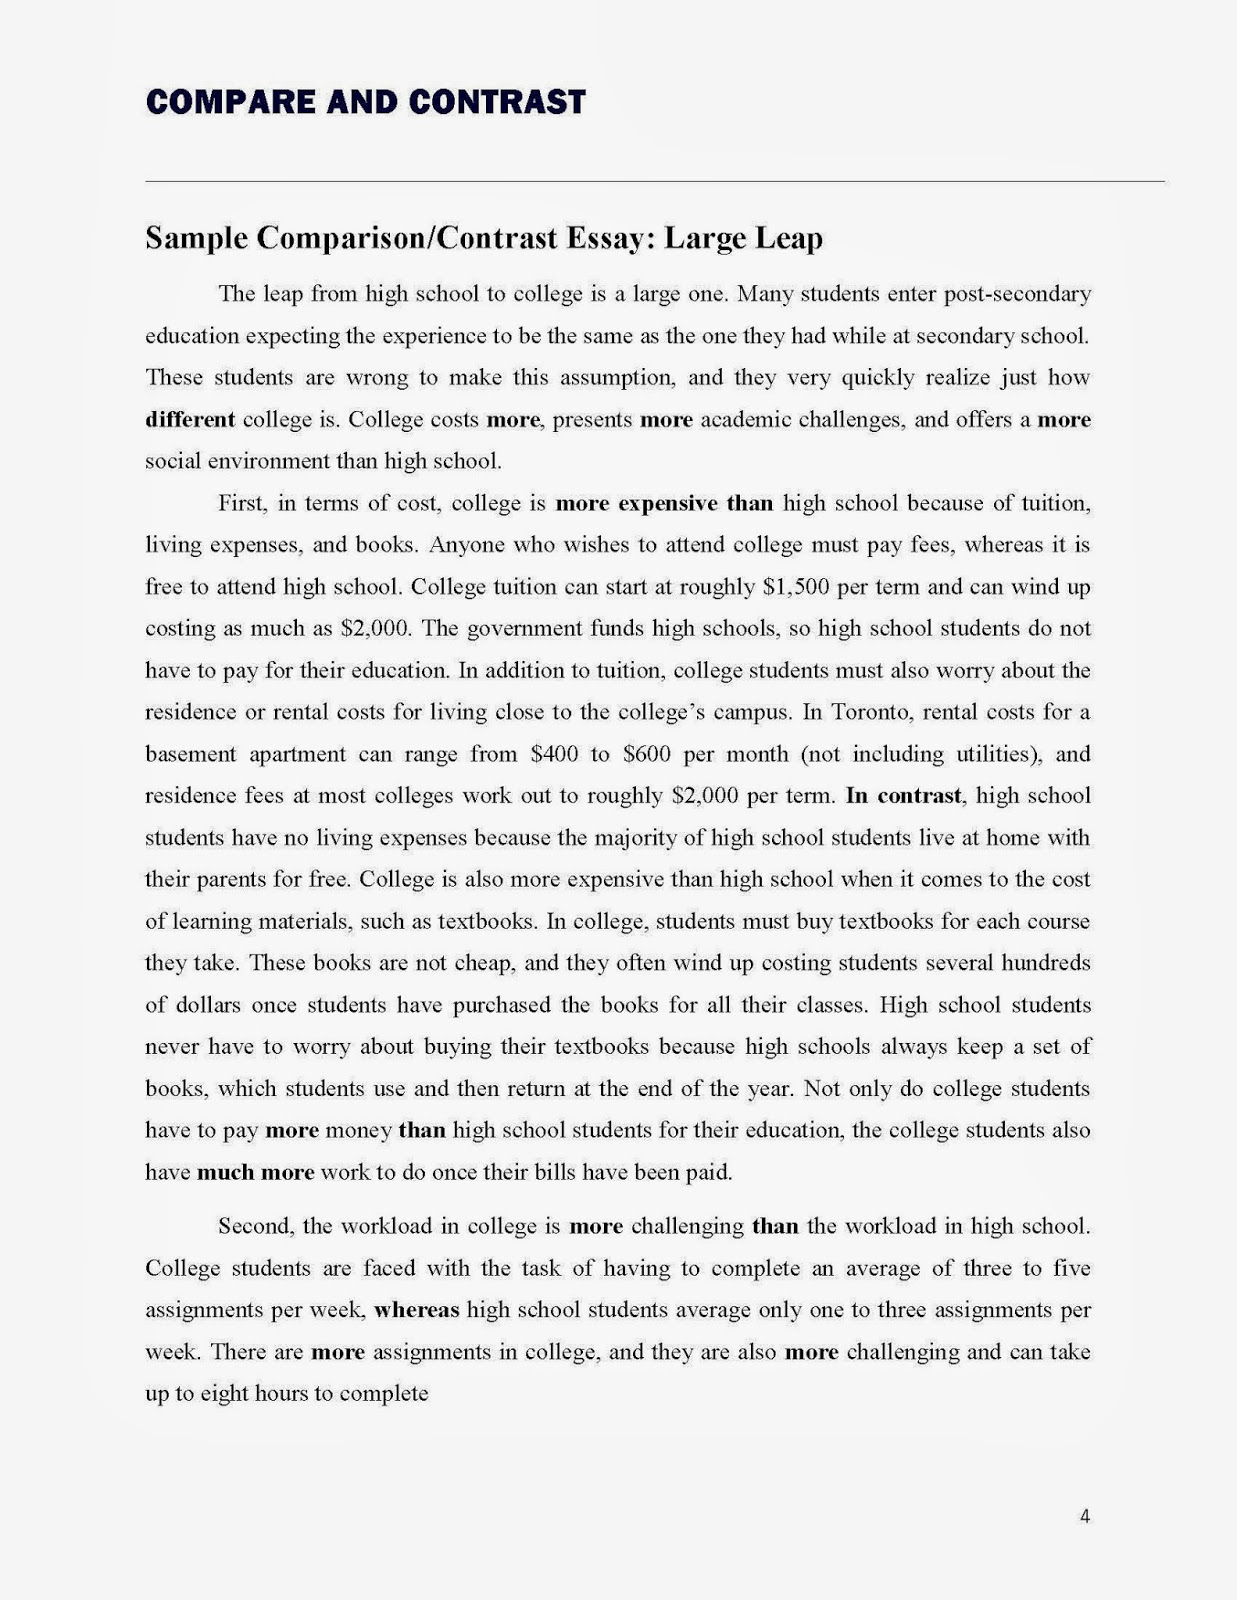 026 Evaluation Essay Topics Compare2band2bcontrast2bessay Page 4 Awful Questions With Criteria Full